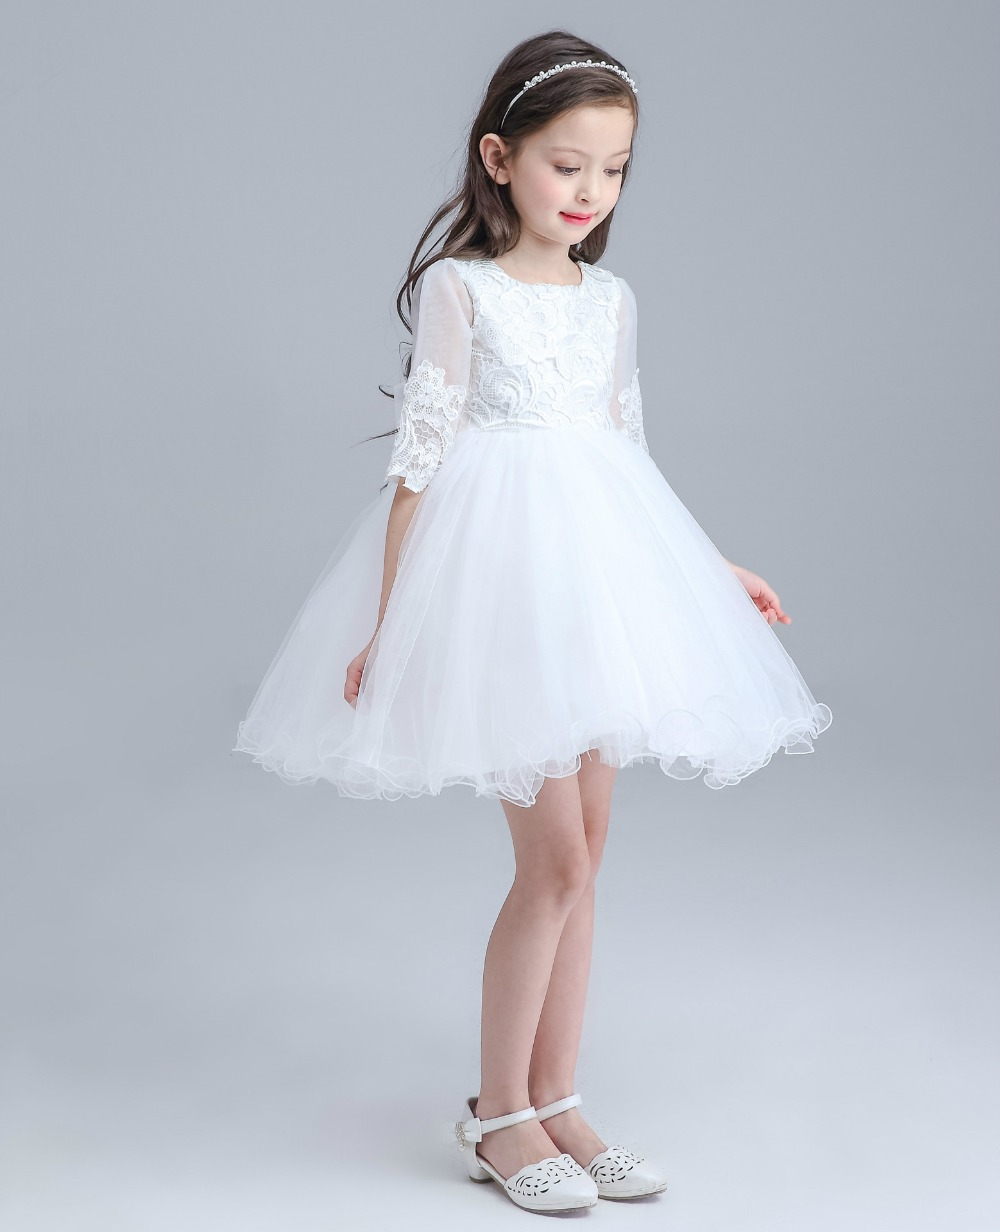 Exelent Infant Wedding Suit Ensign - Womens Dresses & Gowns ...